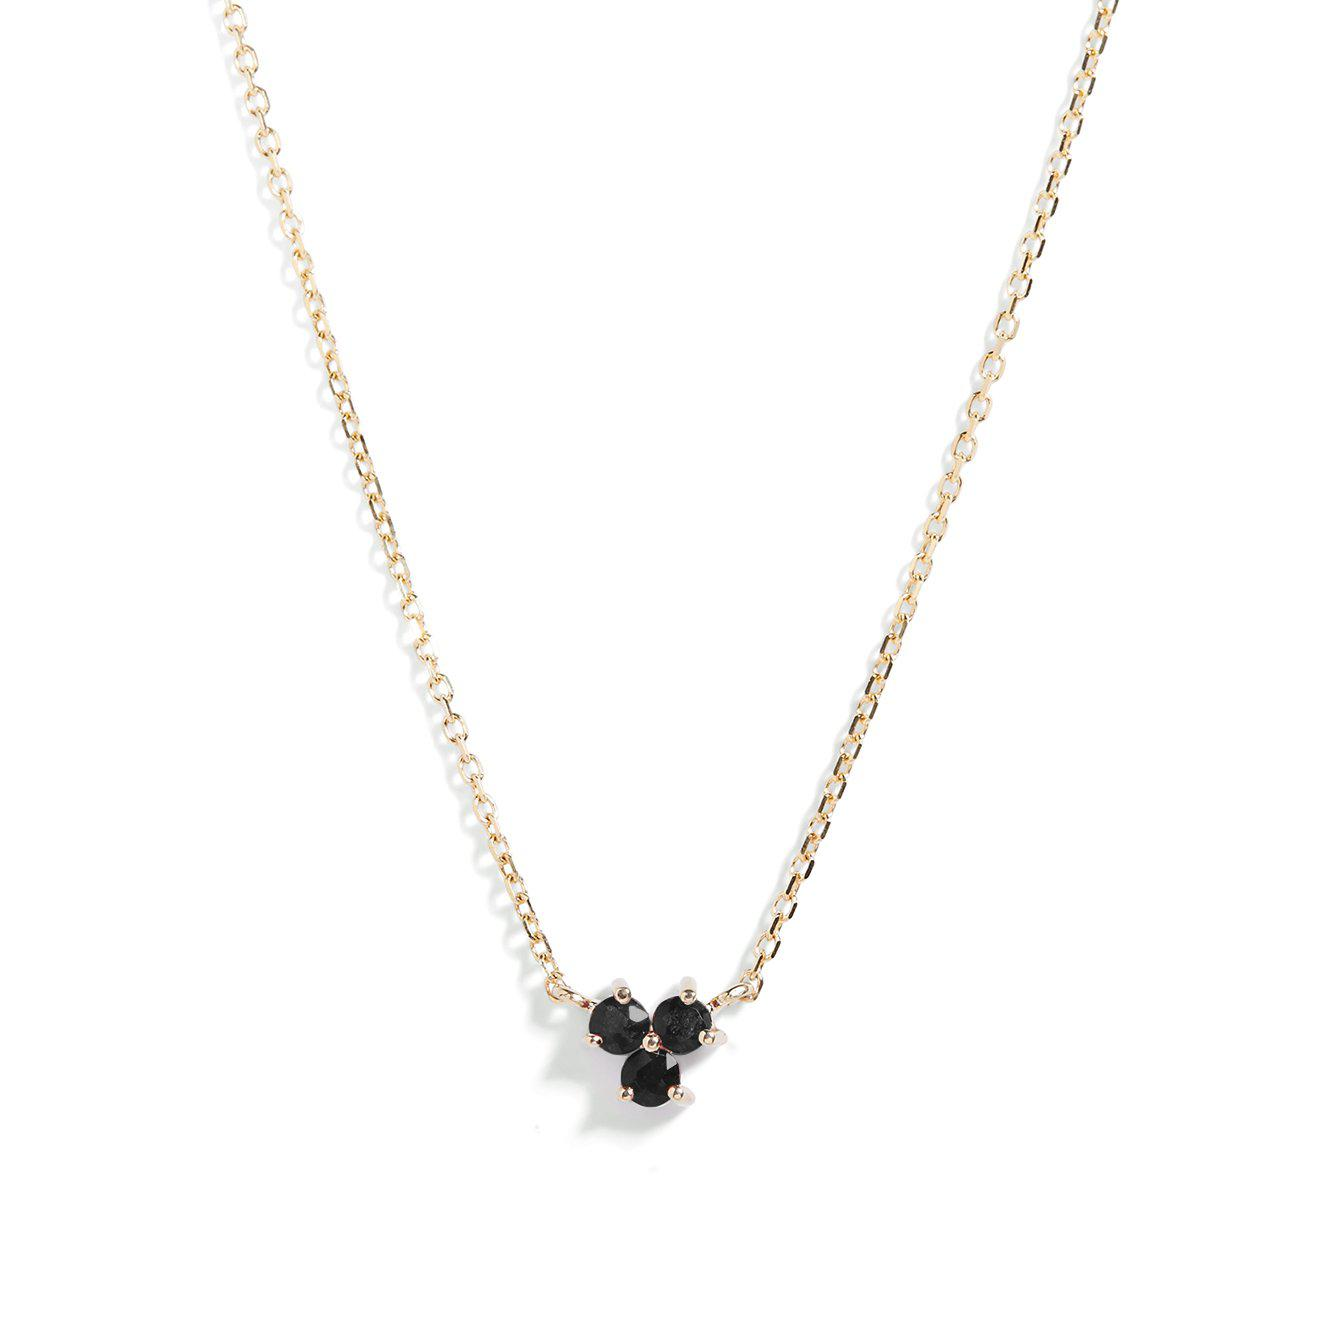 The Trio Spinel Necklace in 9kt Gold